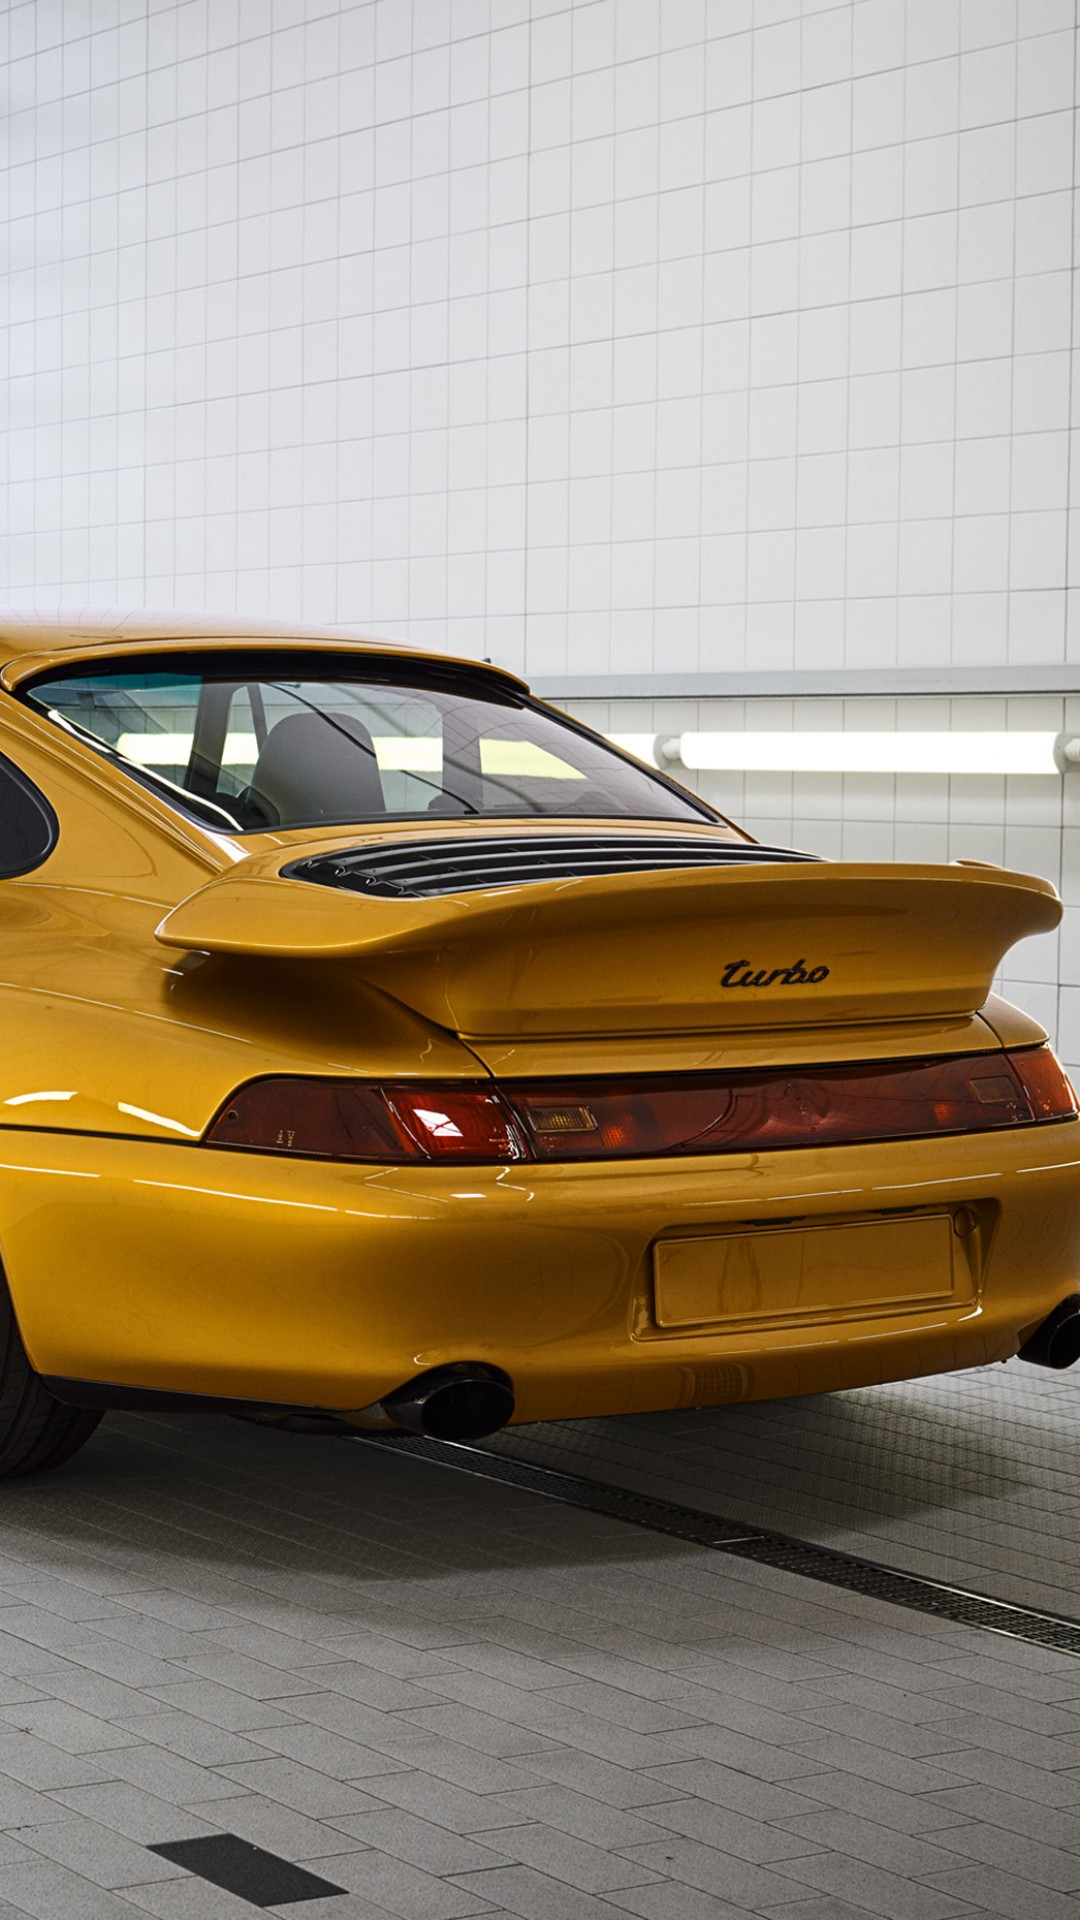 Wallpaper Porsche 993 Turbo S Project Gold 2018 Cars Limited Edition 4k Cars Bikes 20217